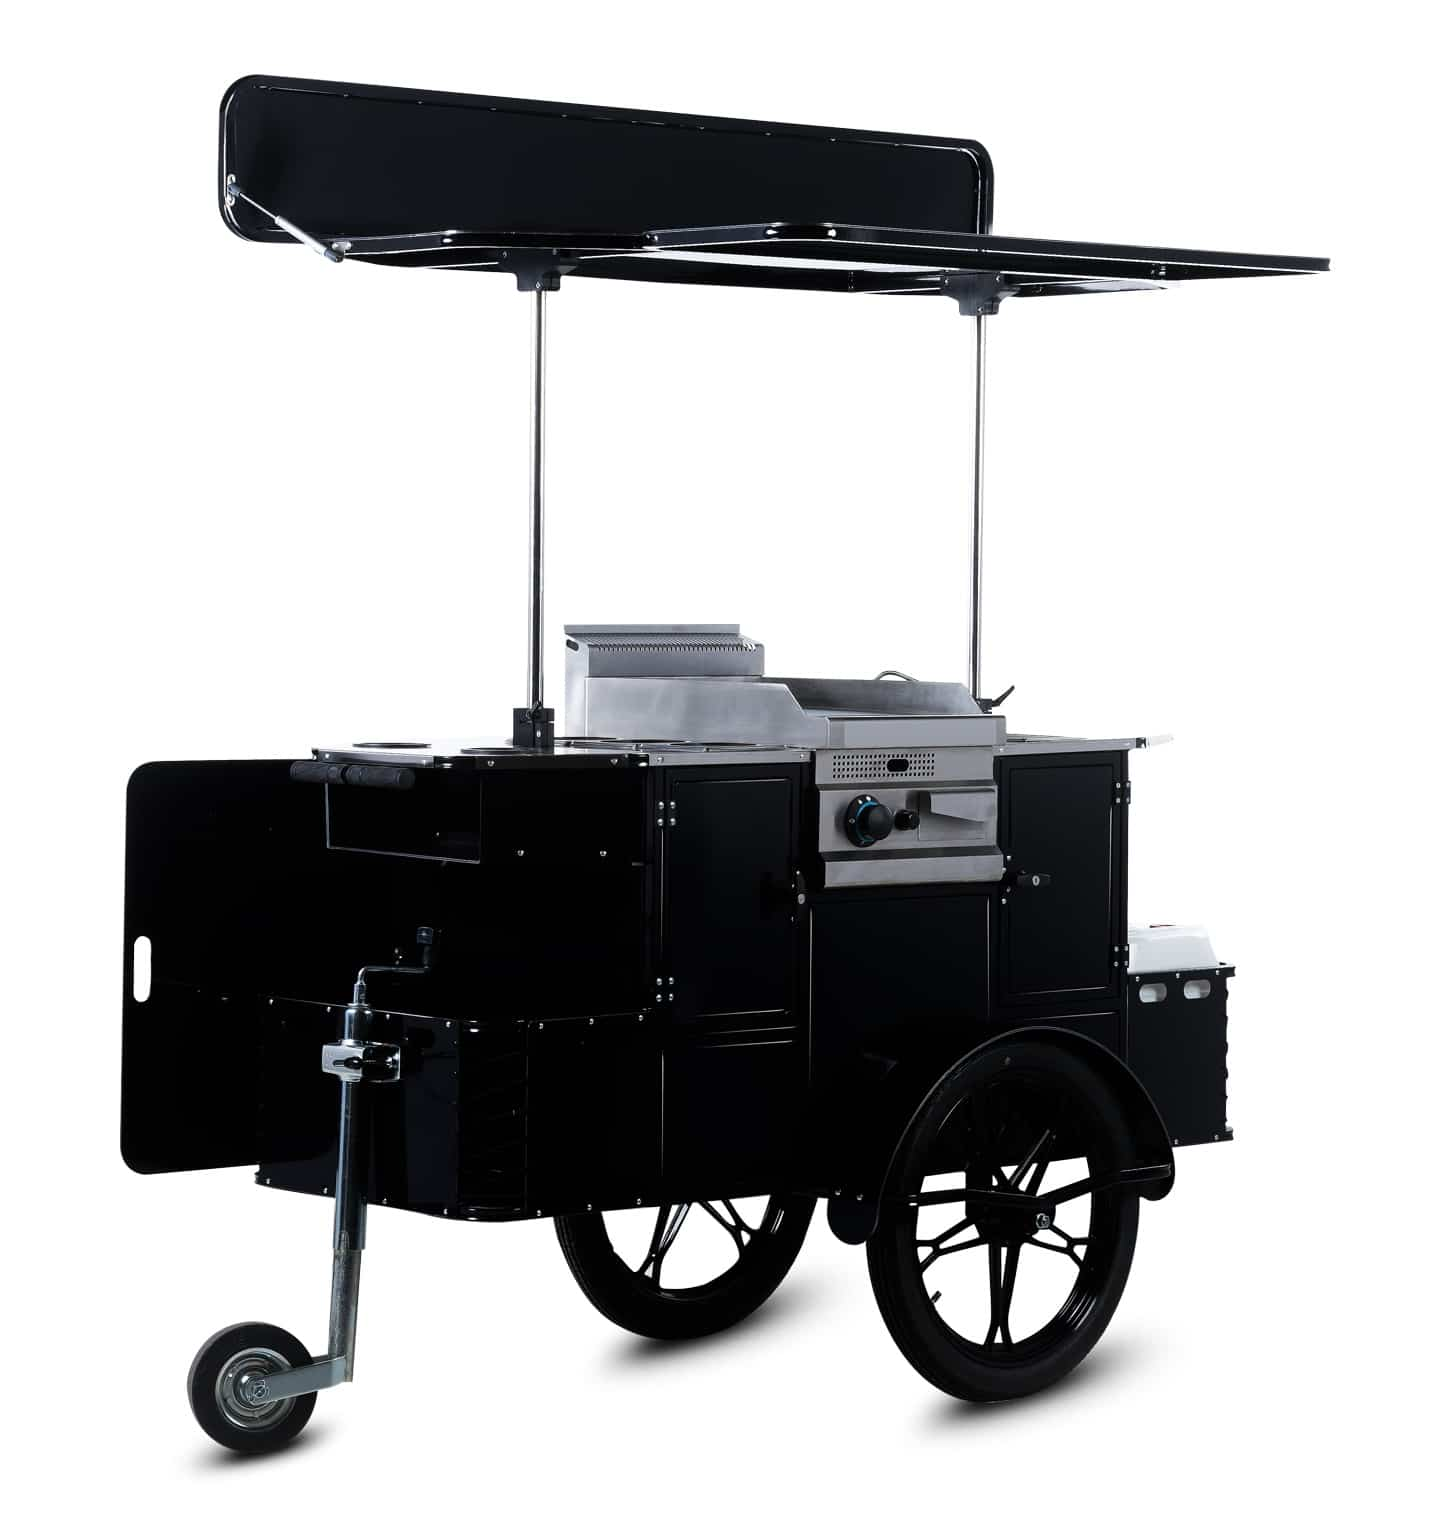 Bizz On Wheels BBQ & grill cart perspective view